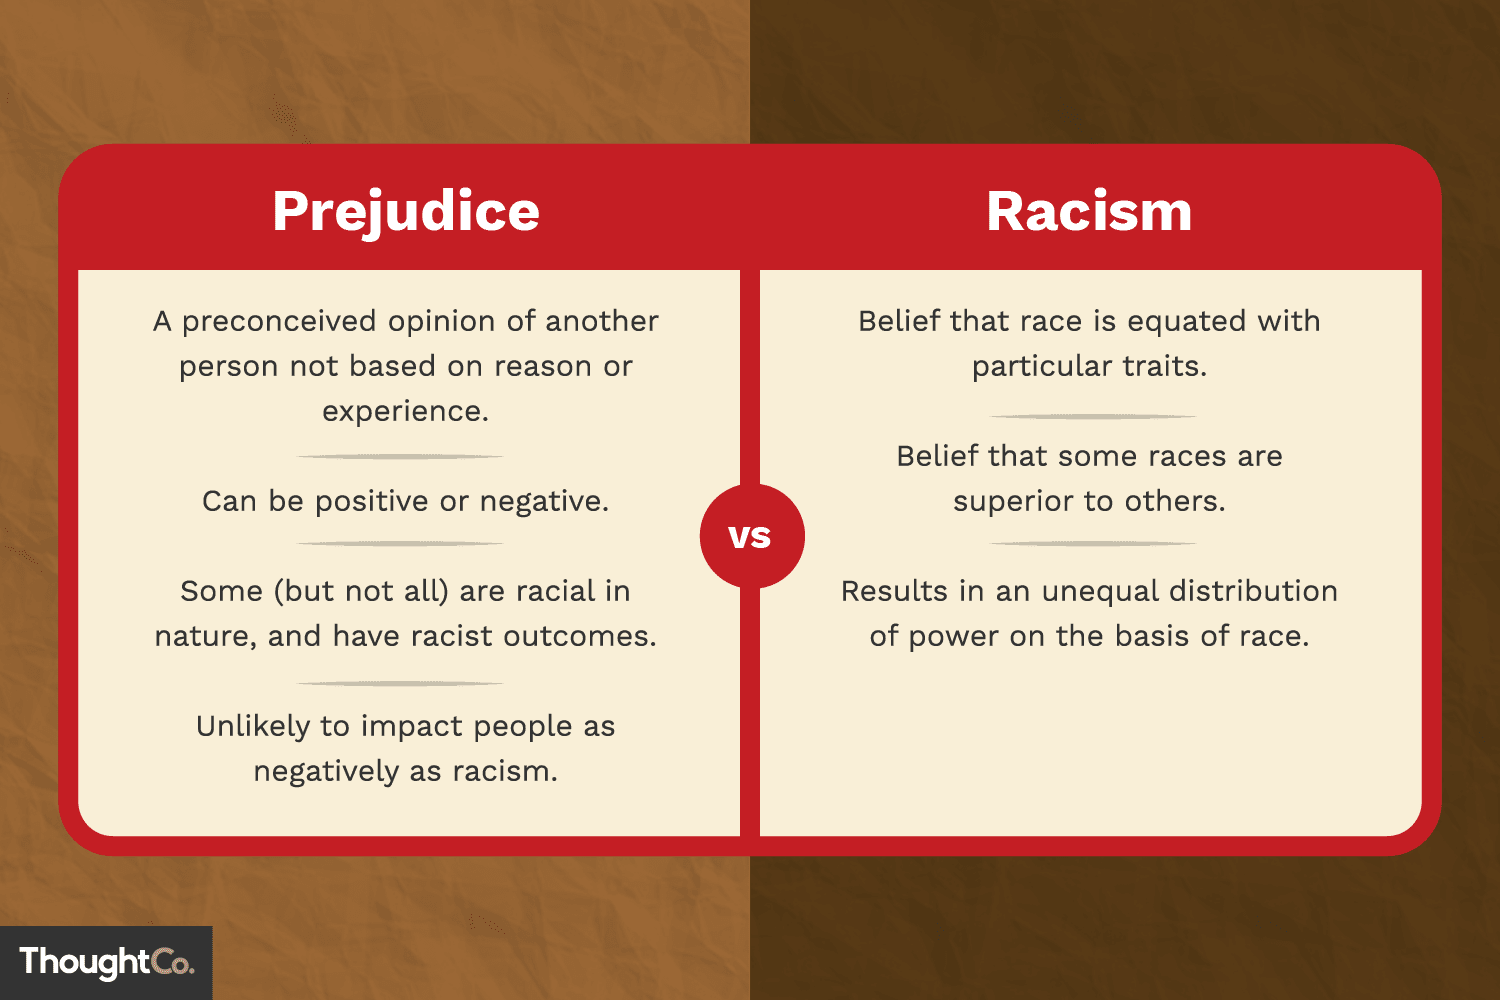 racism vs. prejudice: what's the difference?